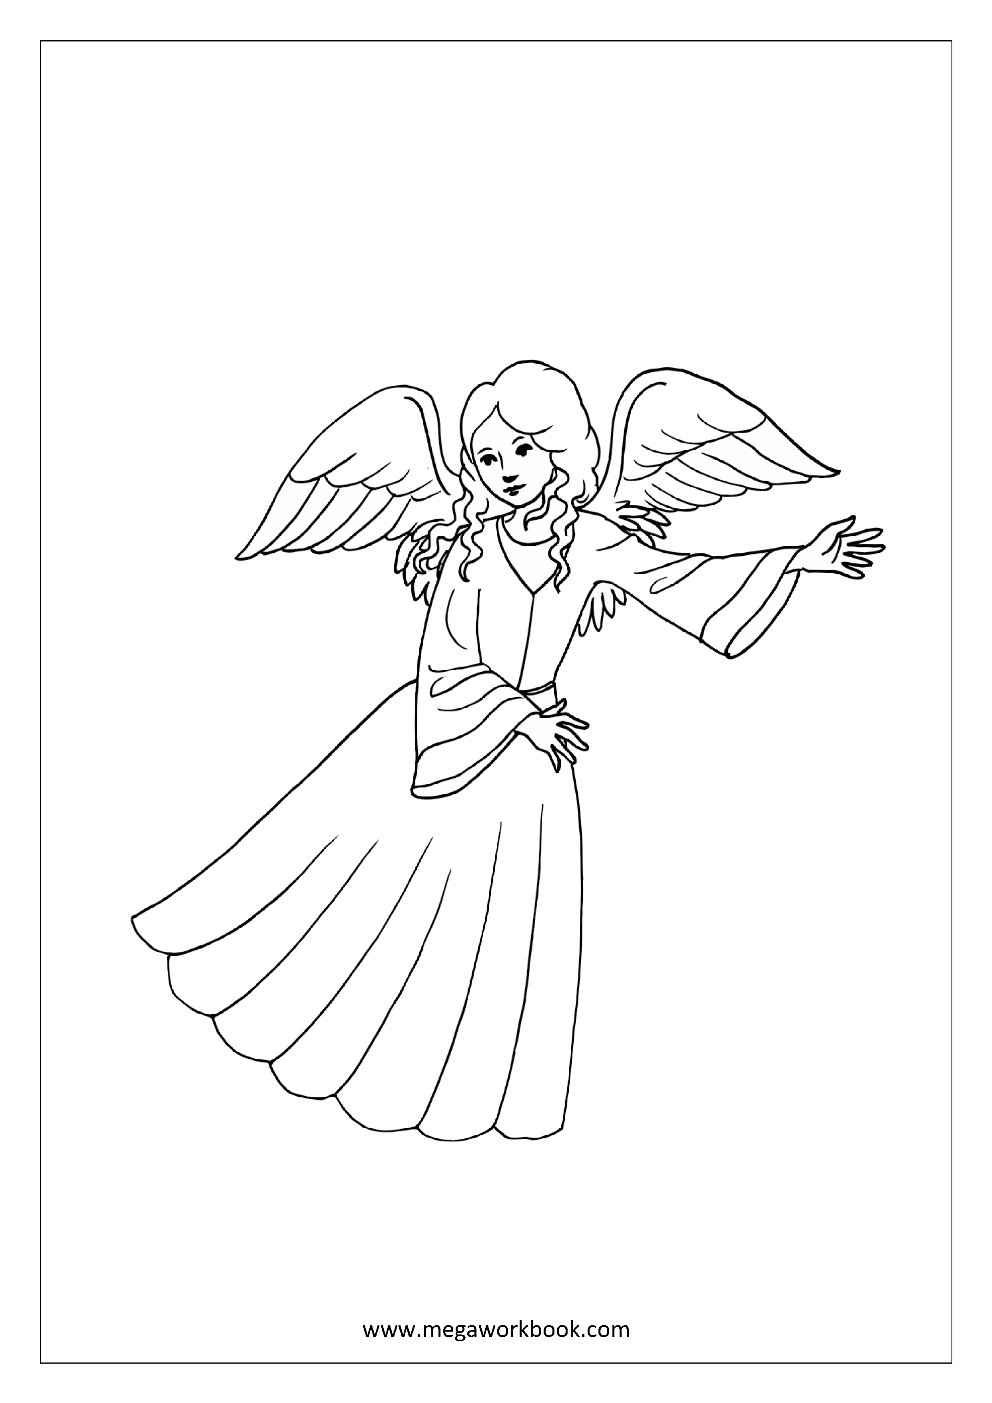 Free Coloring Sheets - People - MegaWorkbook